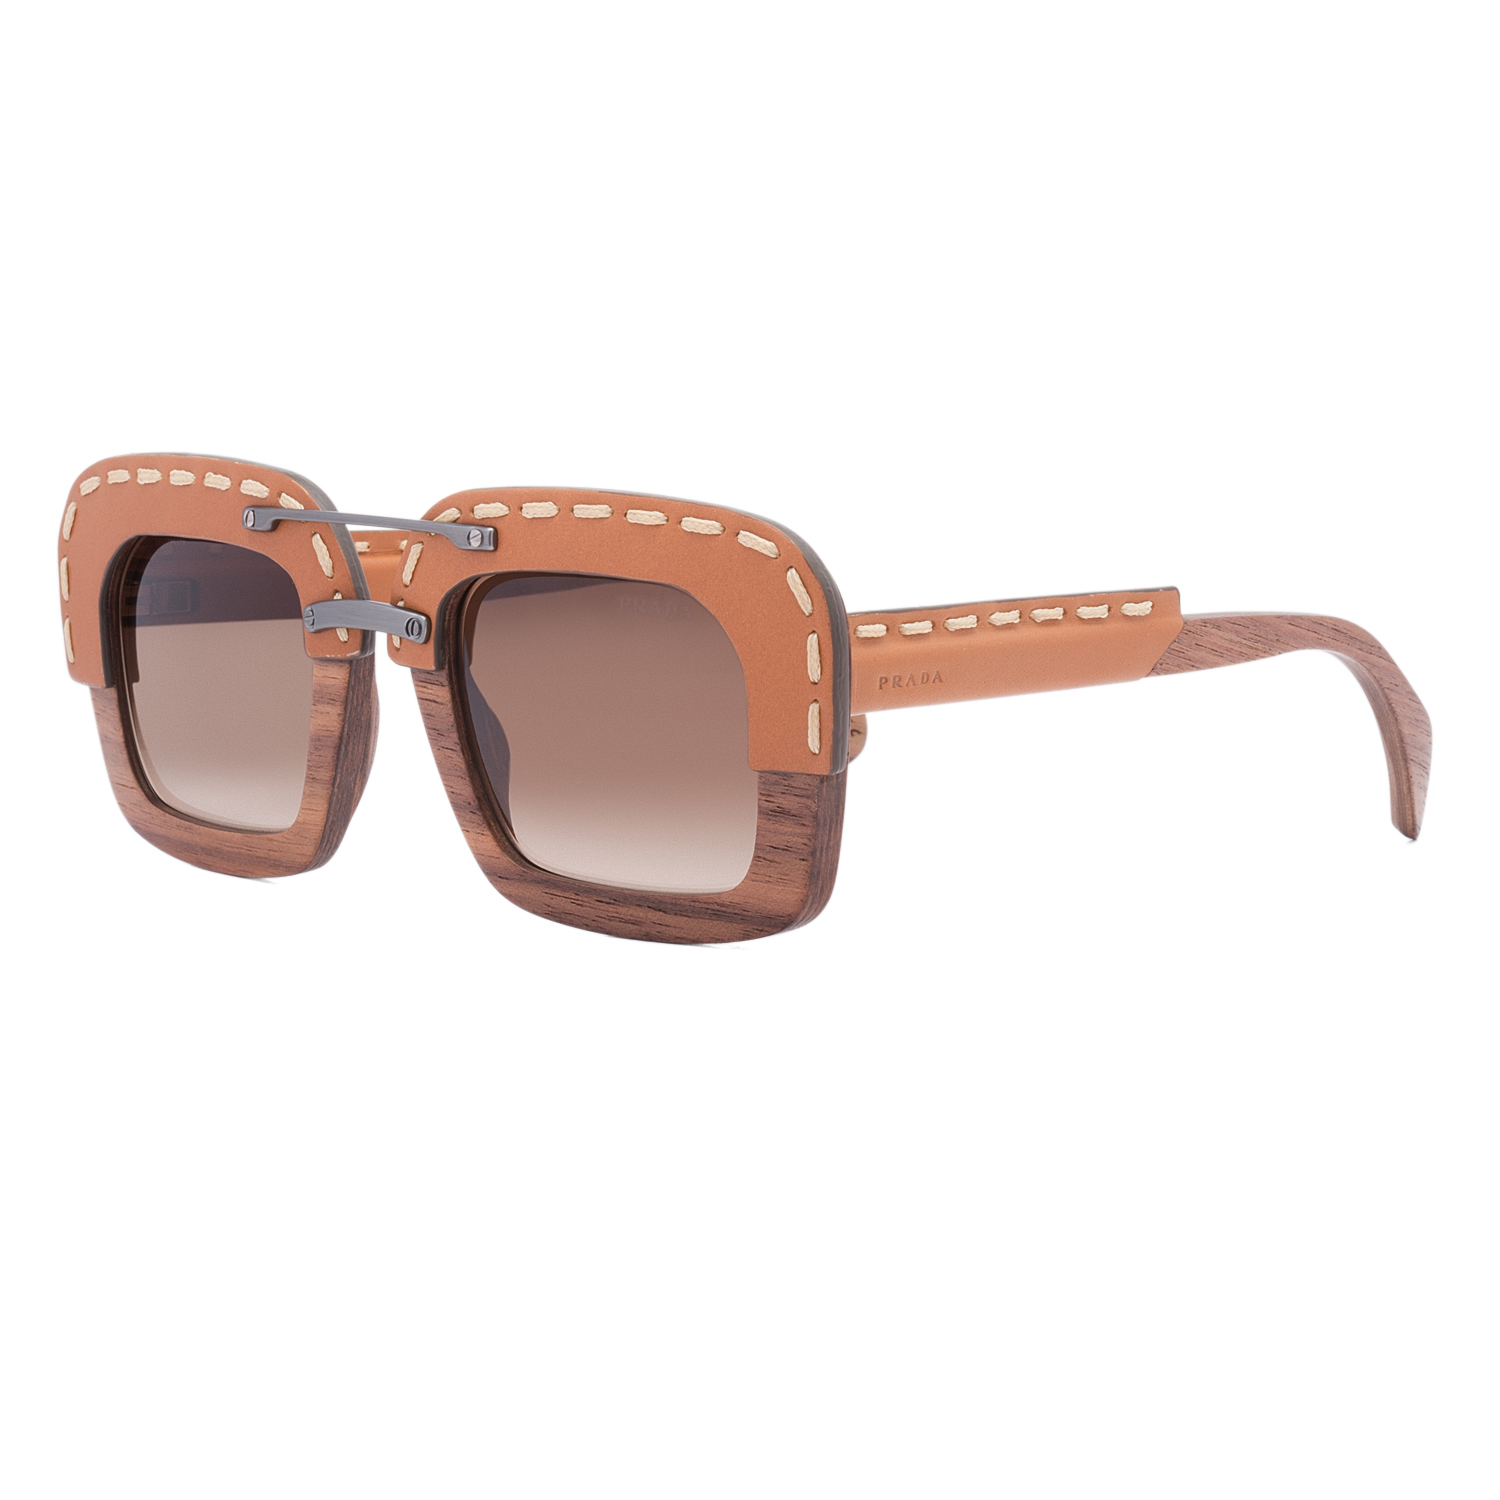 Details About Prada Pr 26rs Womens Sunglasses Ua76s1 Brown Nut Canaletto Wood Leather Frame